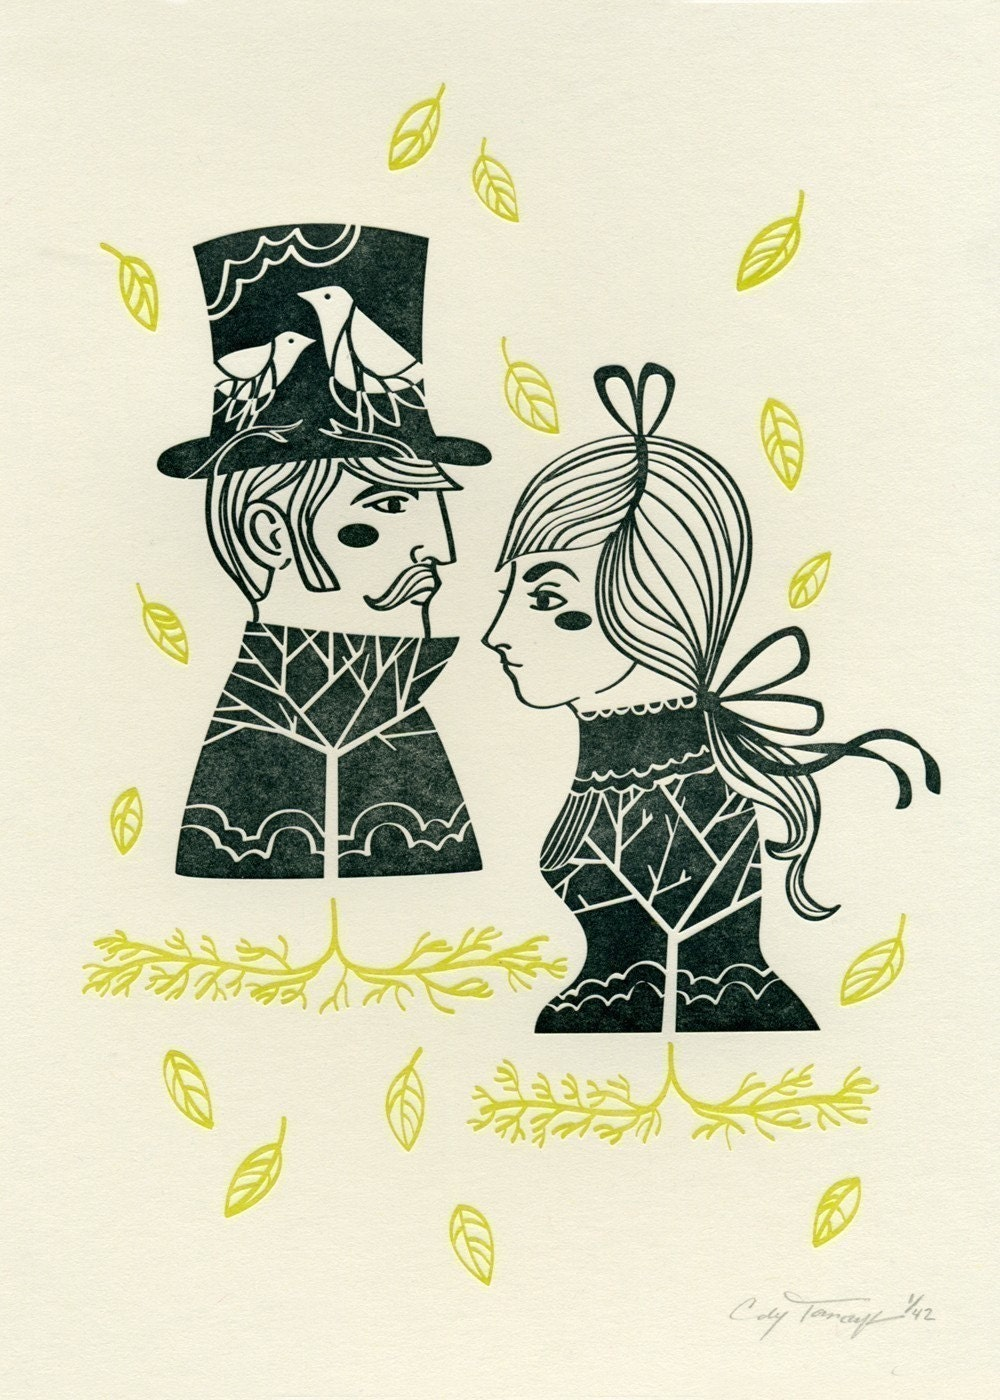 Kind Mr and Mrs Letterpress Print